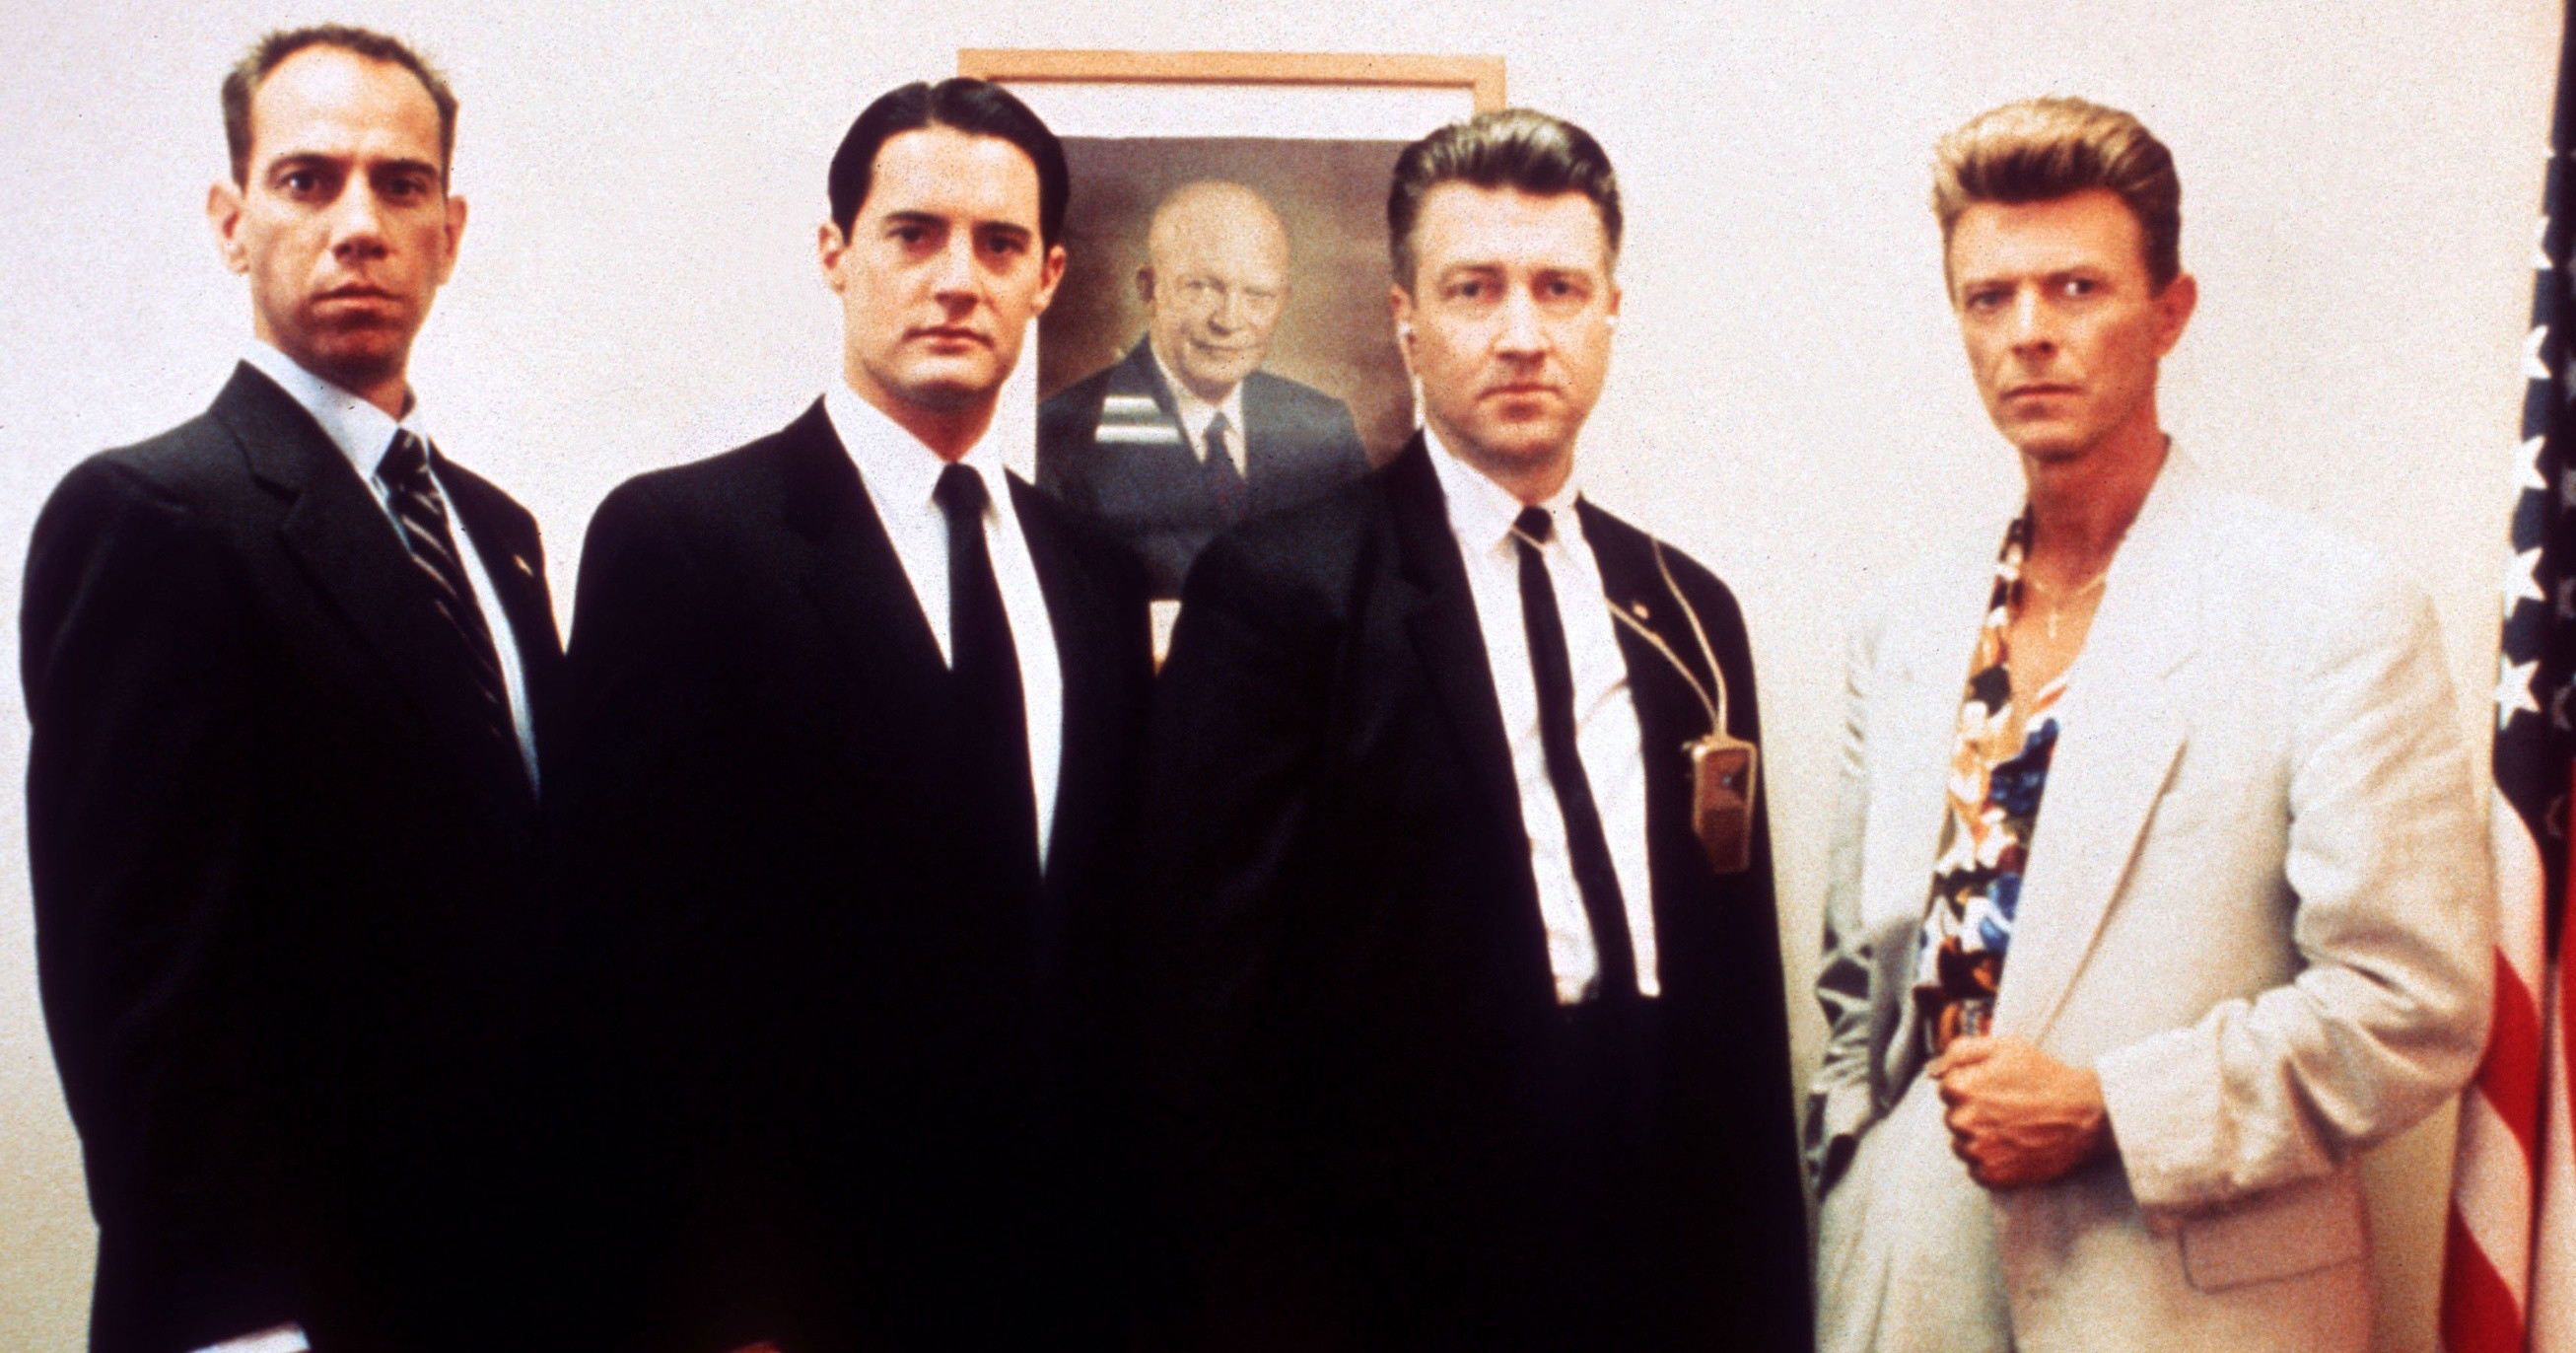 From left: Miguel Ferrer, Kyle MacLachlan, David Lynch, and David Bowie on the set of Twin Peaks: Fire Walk with Me in 1991.